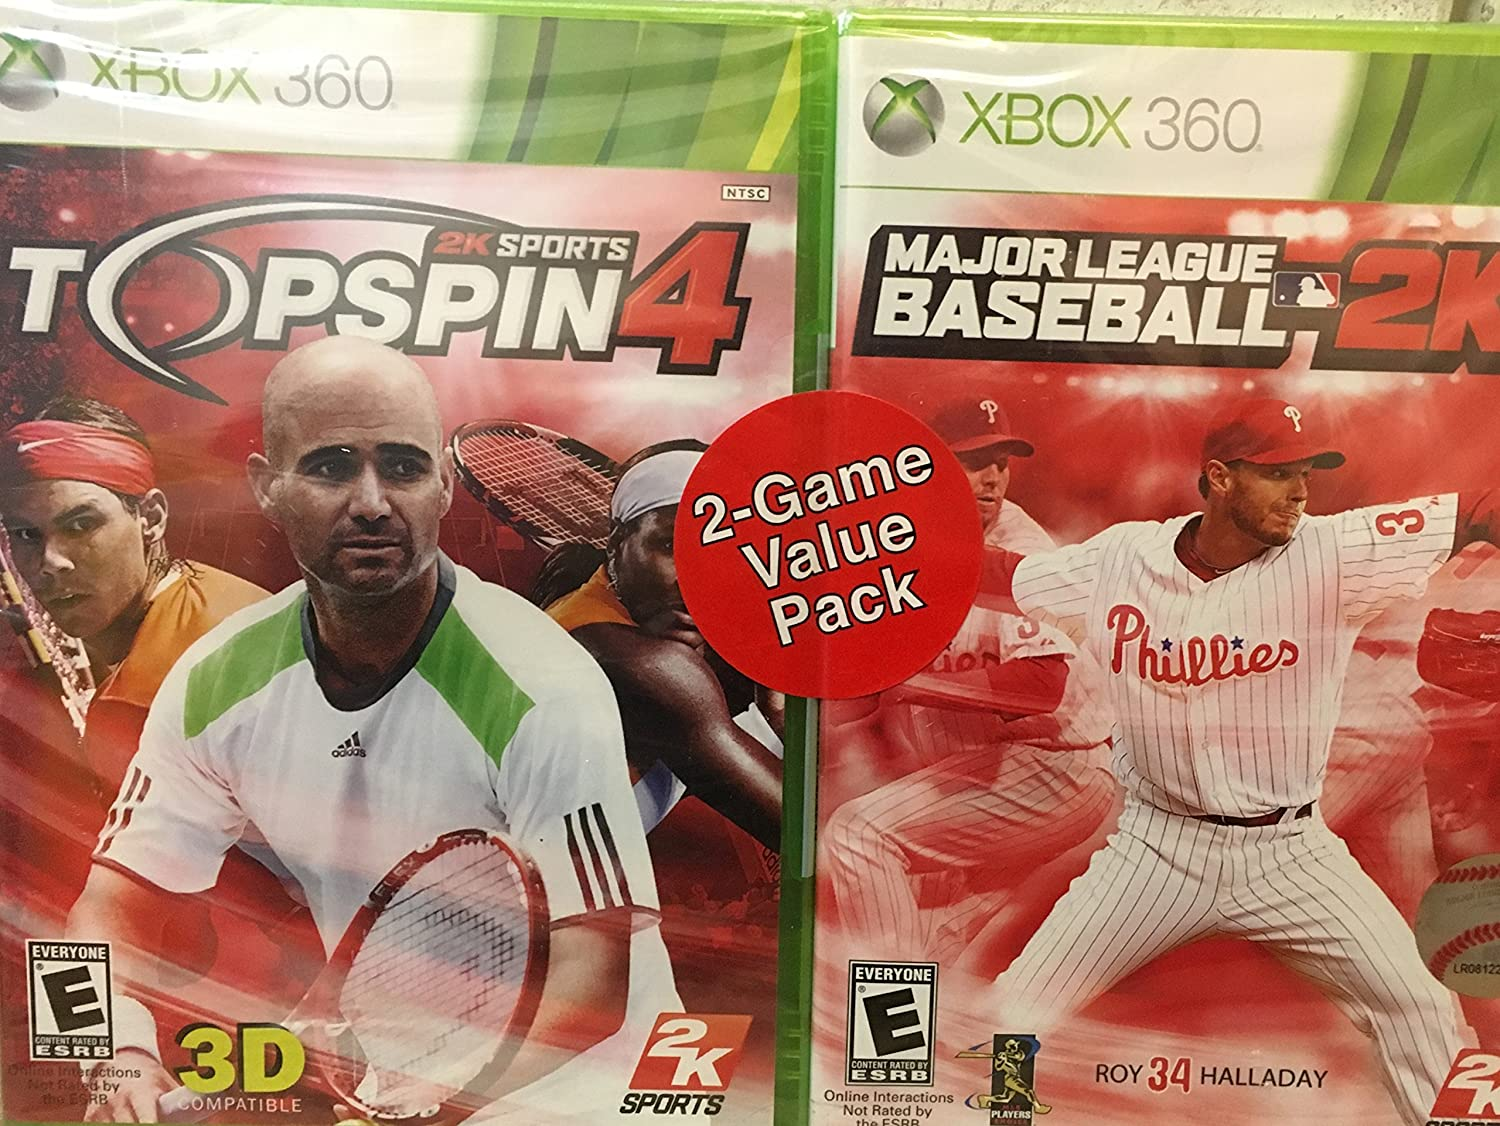 Sports Value Pack: Top Spin 4 and MLB 2K11 Bundle - Xbox 360